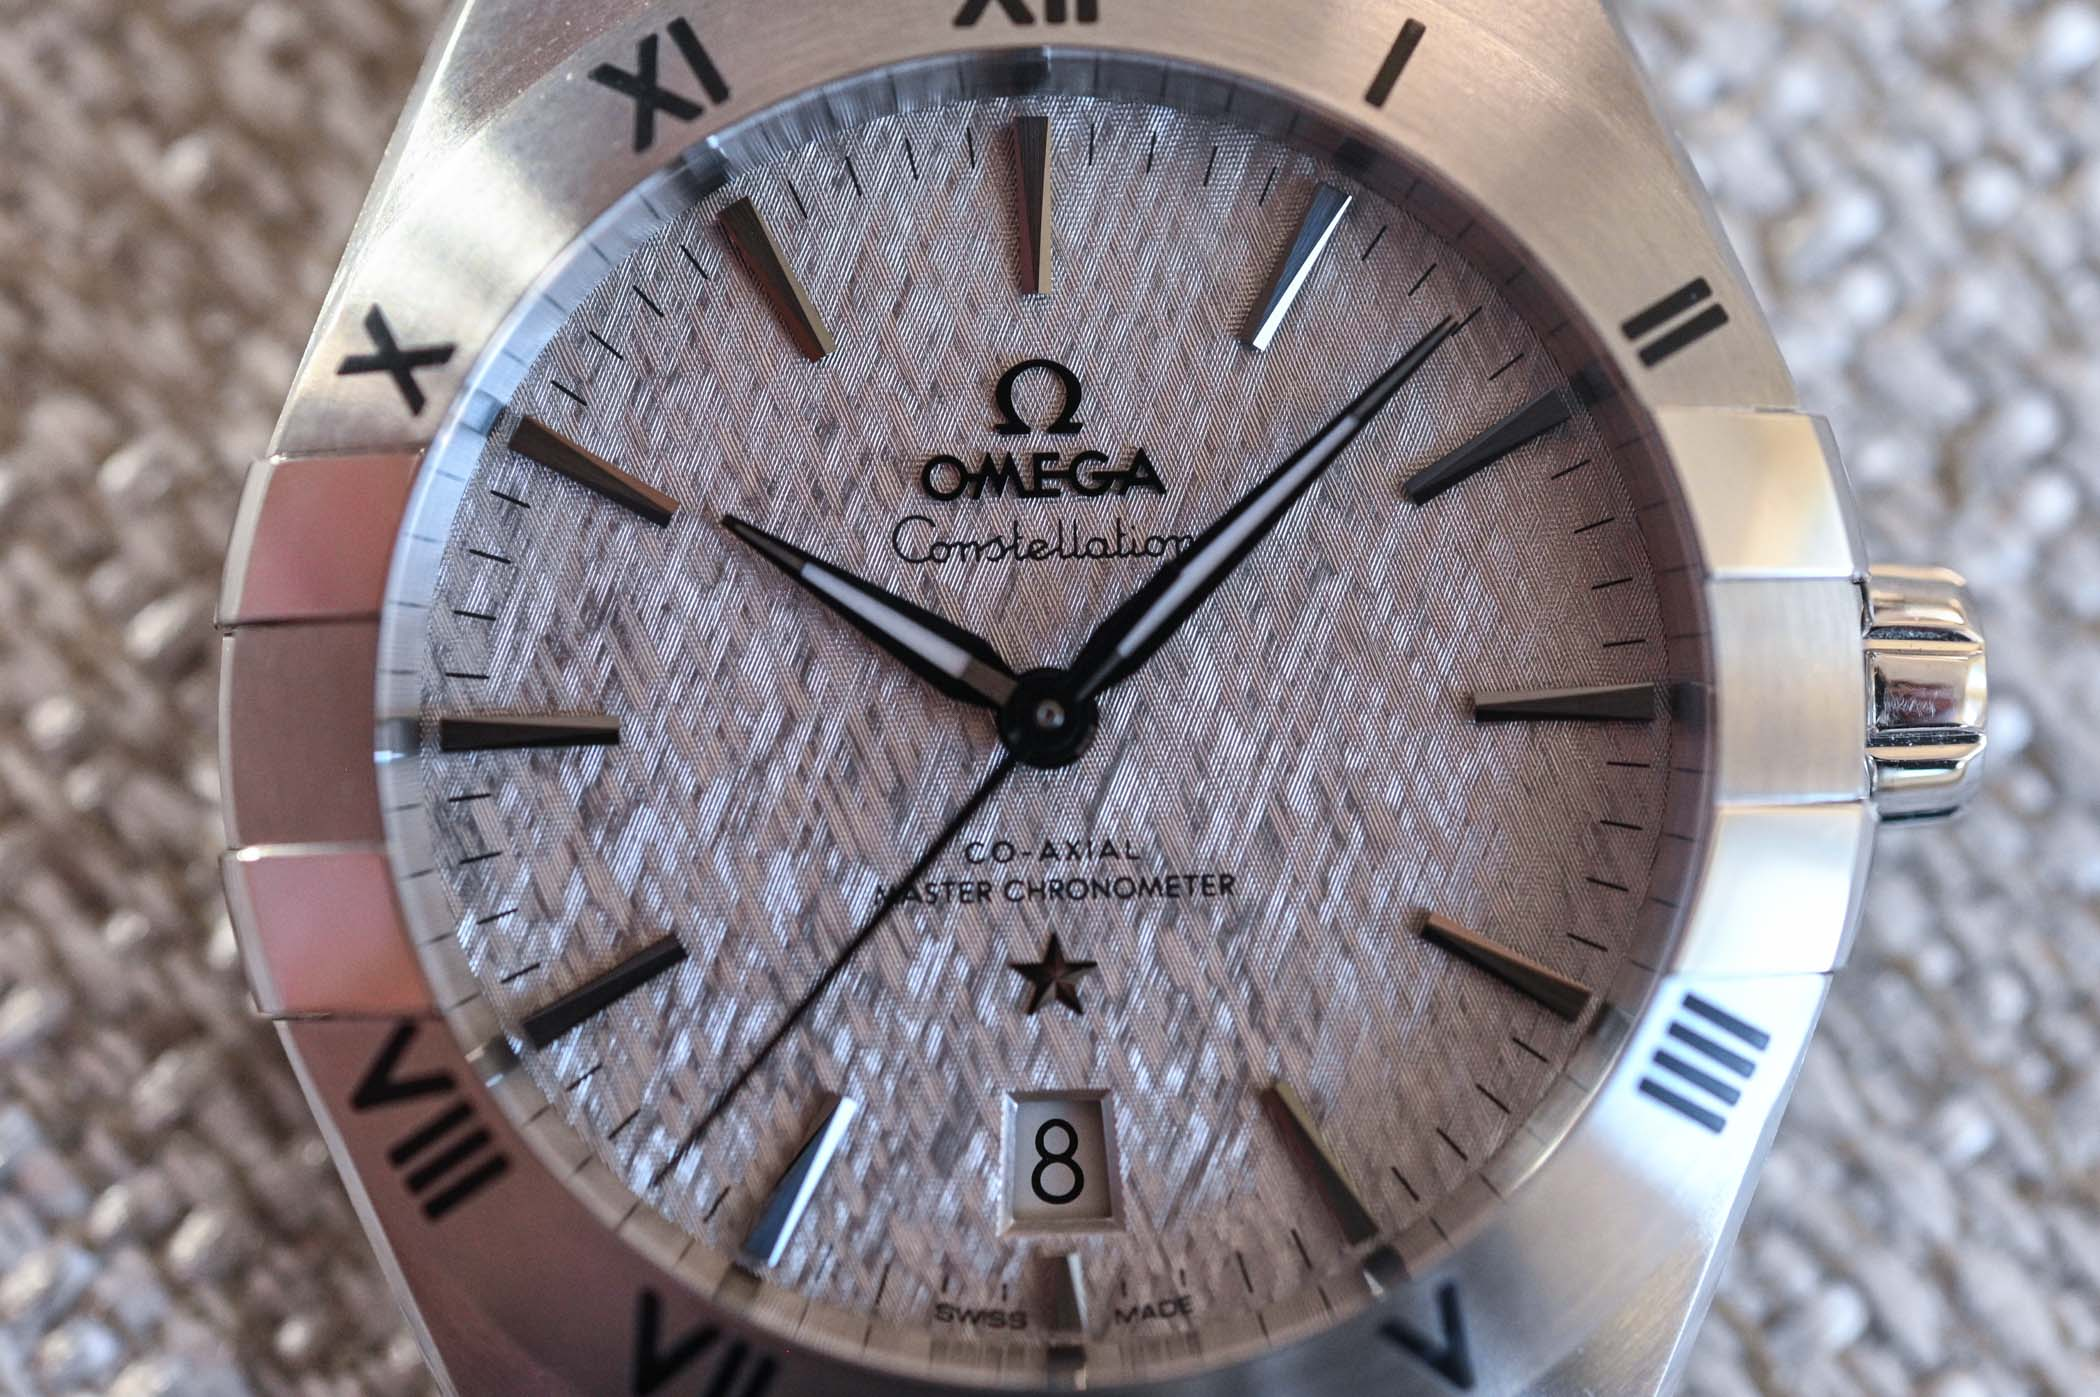 2020-Omega-Constellation-Co-Axial-Master-Chronometer-39mm-review-2.jpg